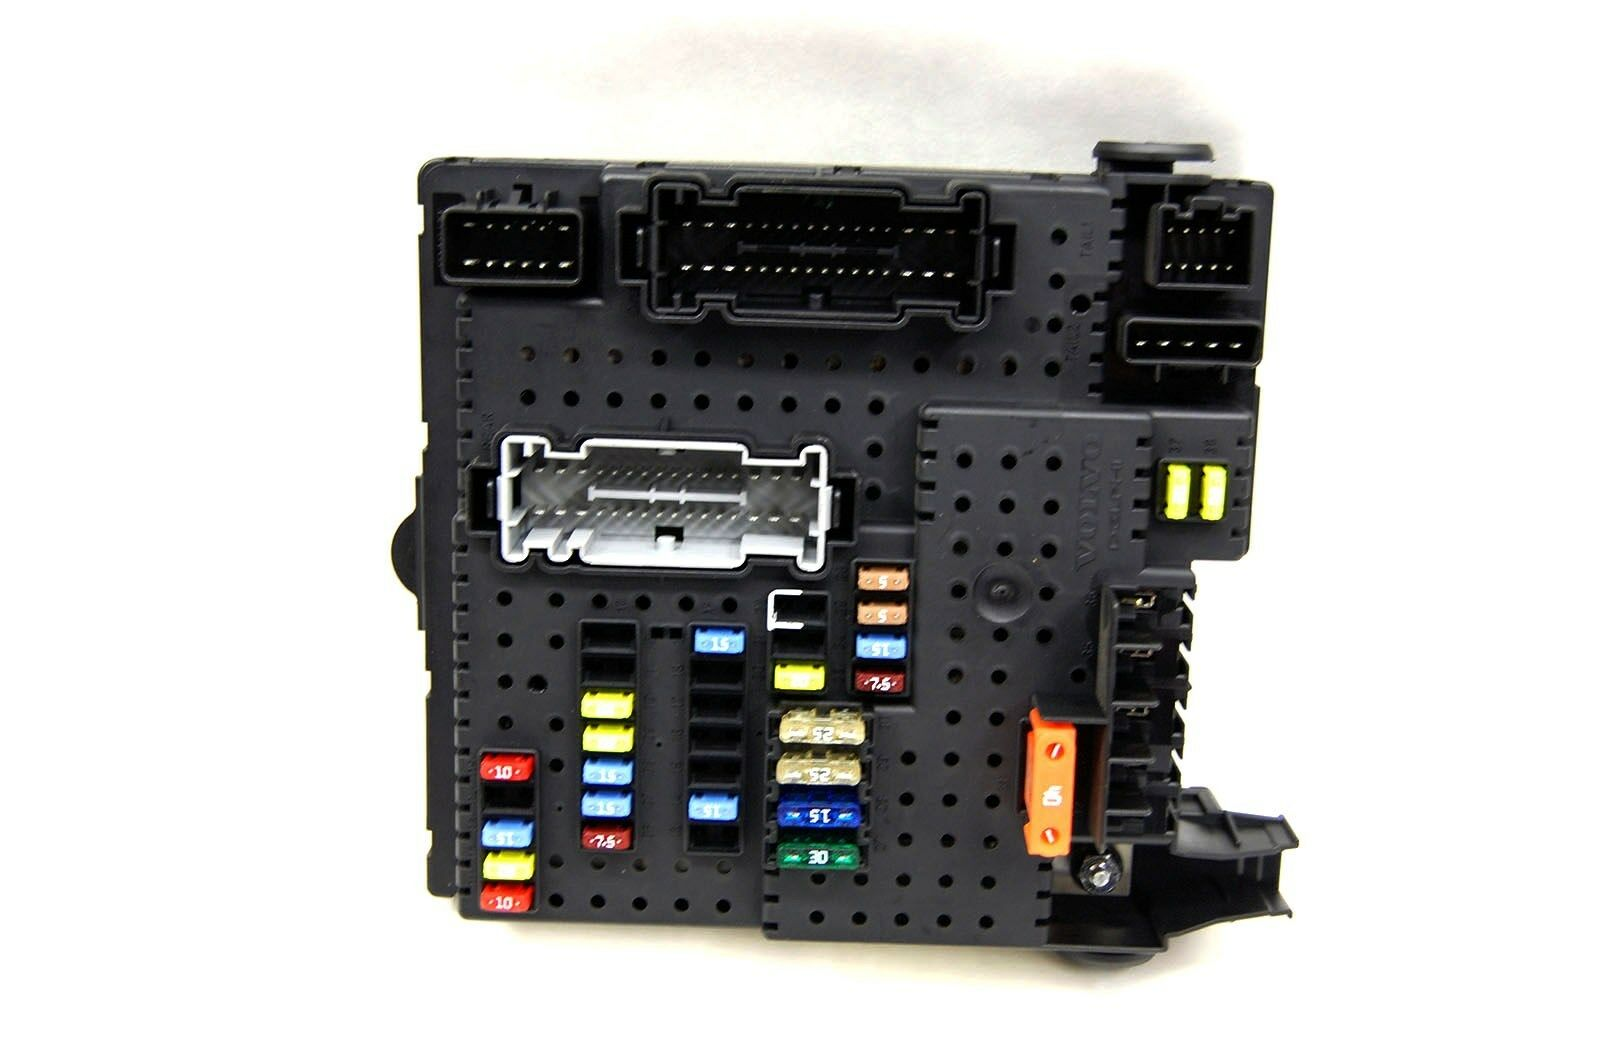 s l1600 2009 volvo s60 fuse box wiring diagram shrutiradio Fuse S60 Box Volvo Dishbordfuse at bayanpartner.co